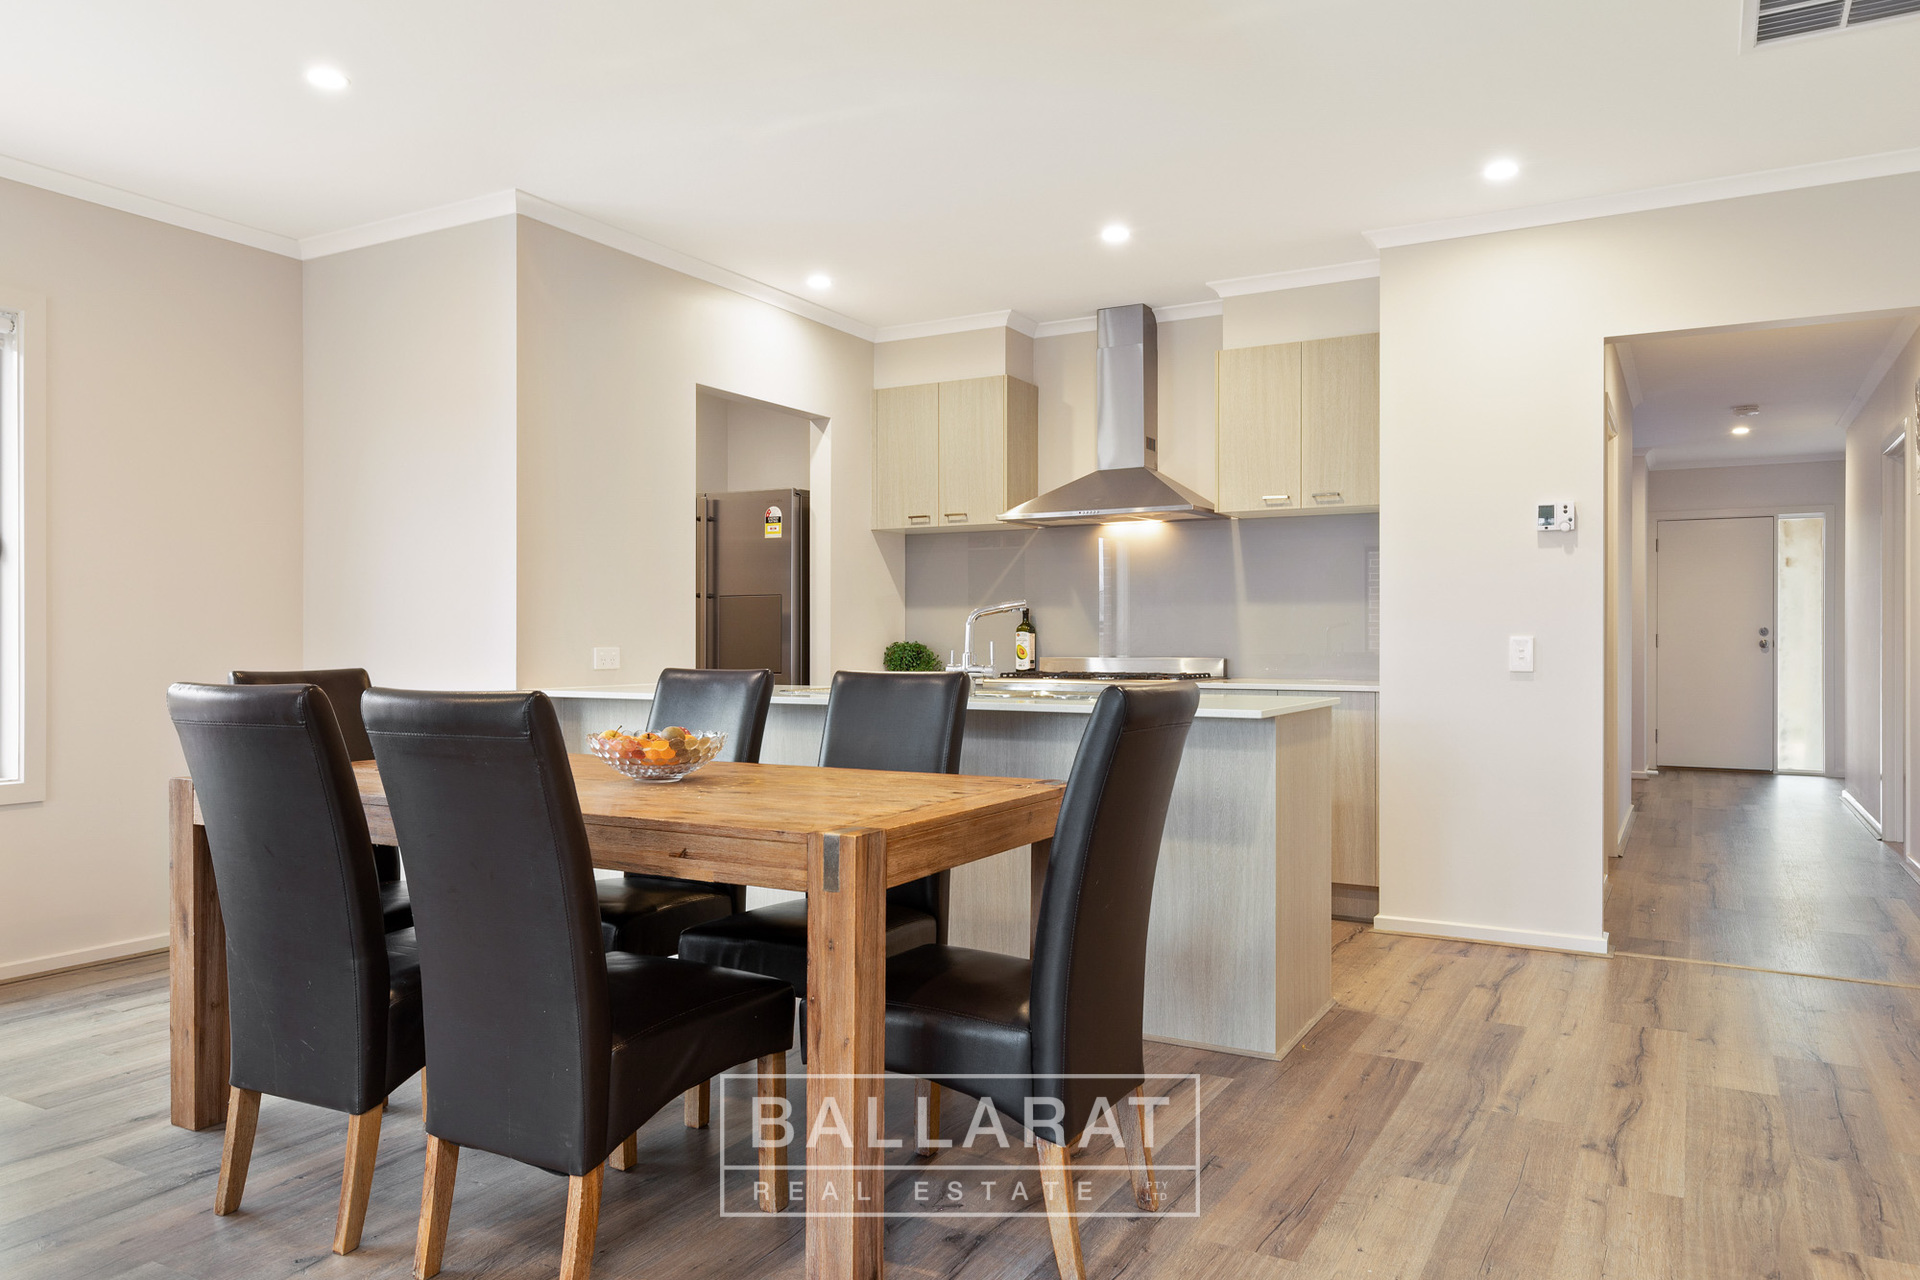 241 Ballarat - Carngham Road Winter Valley